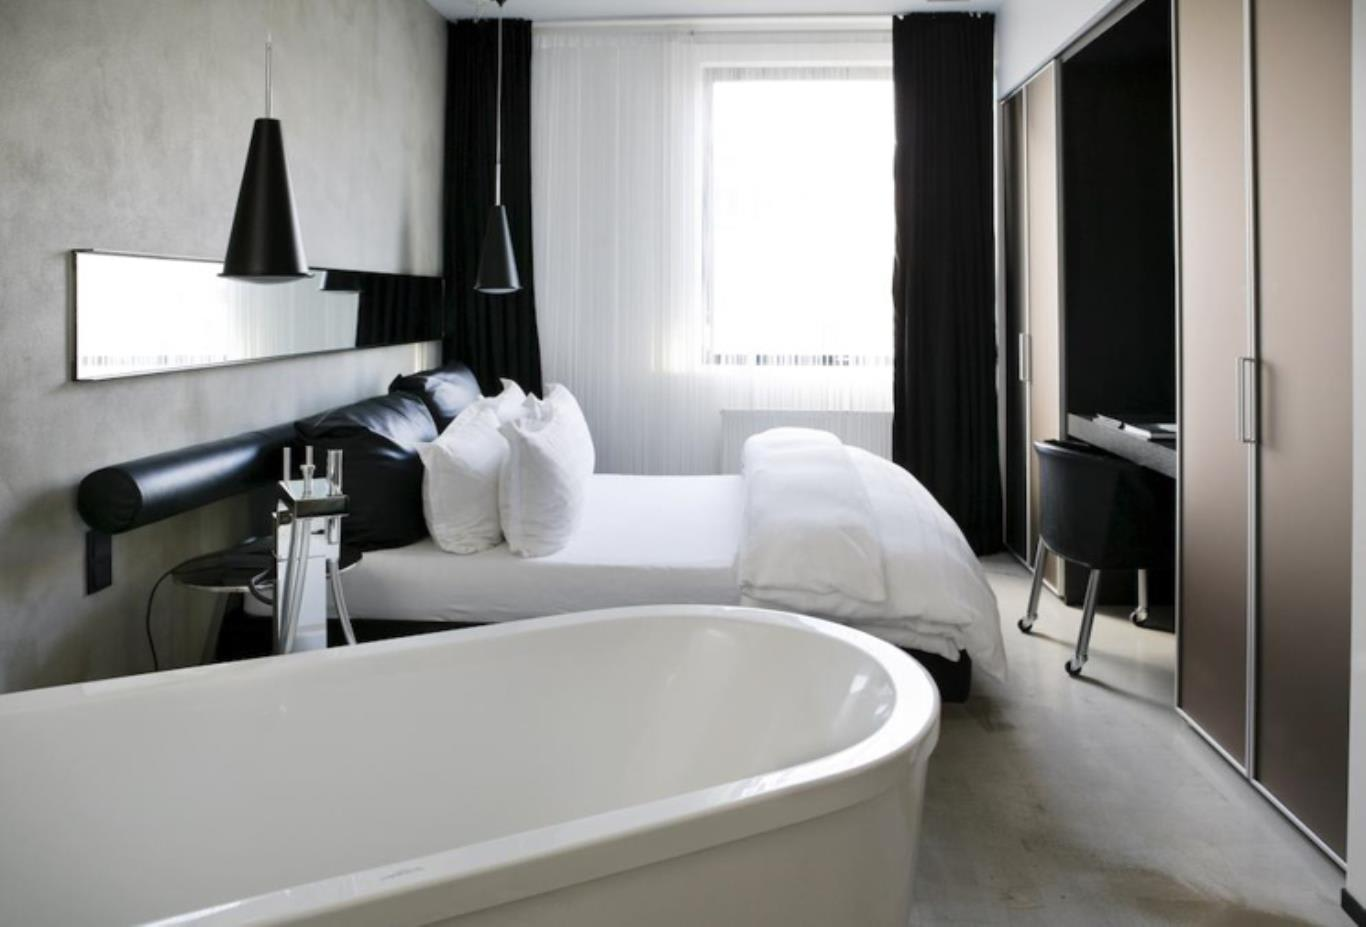 Deluxe Double Room bath